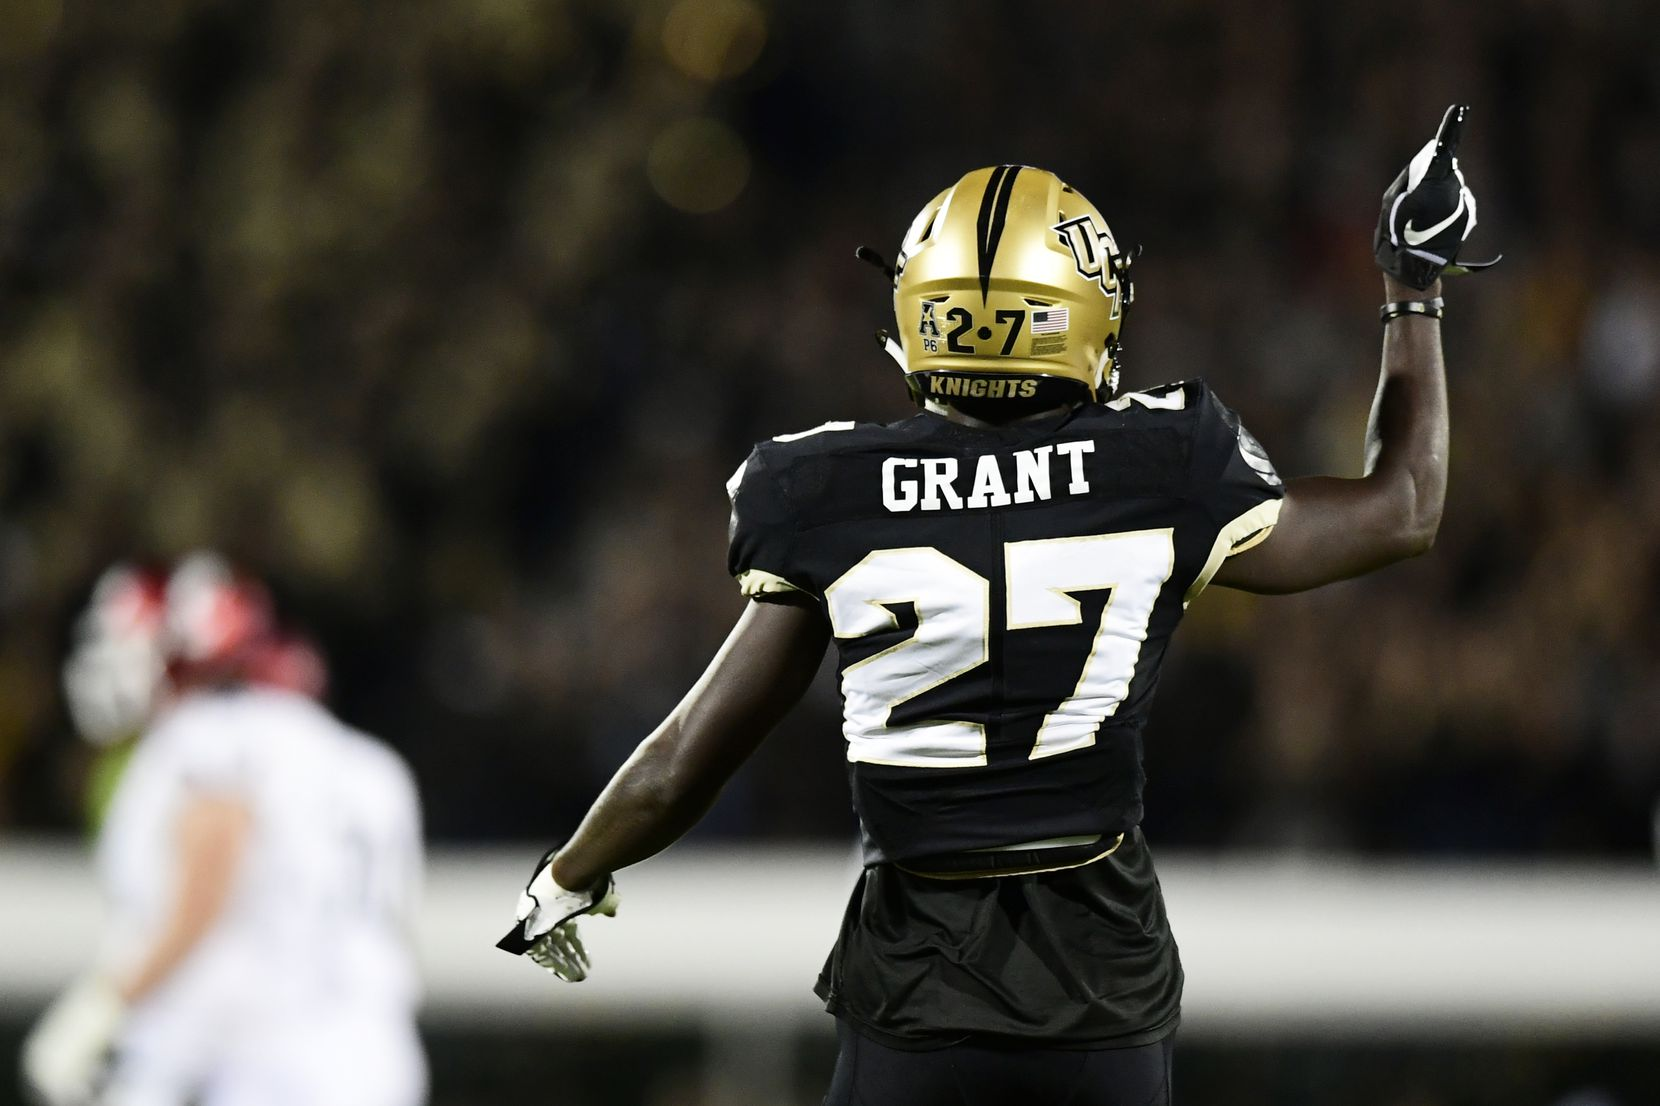 Richie Grant #27 of the UCF Knights celebrates after a tackle for a loss against the Cincinnati Bearcats on November 17, 2018 in Orlando, Florida.